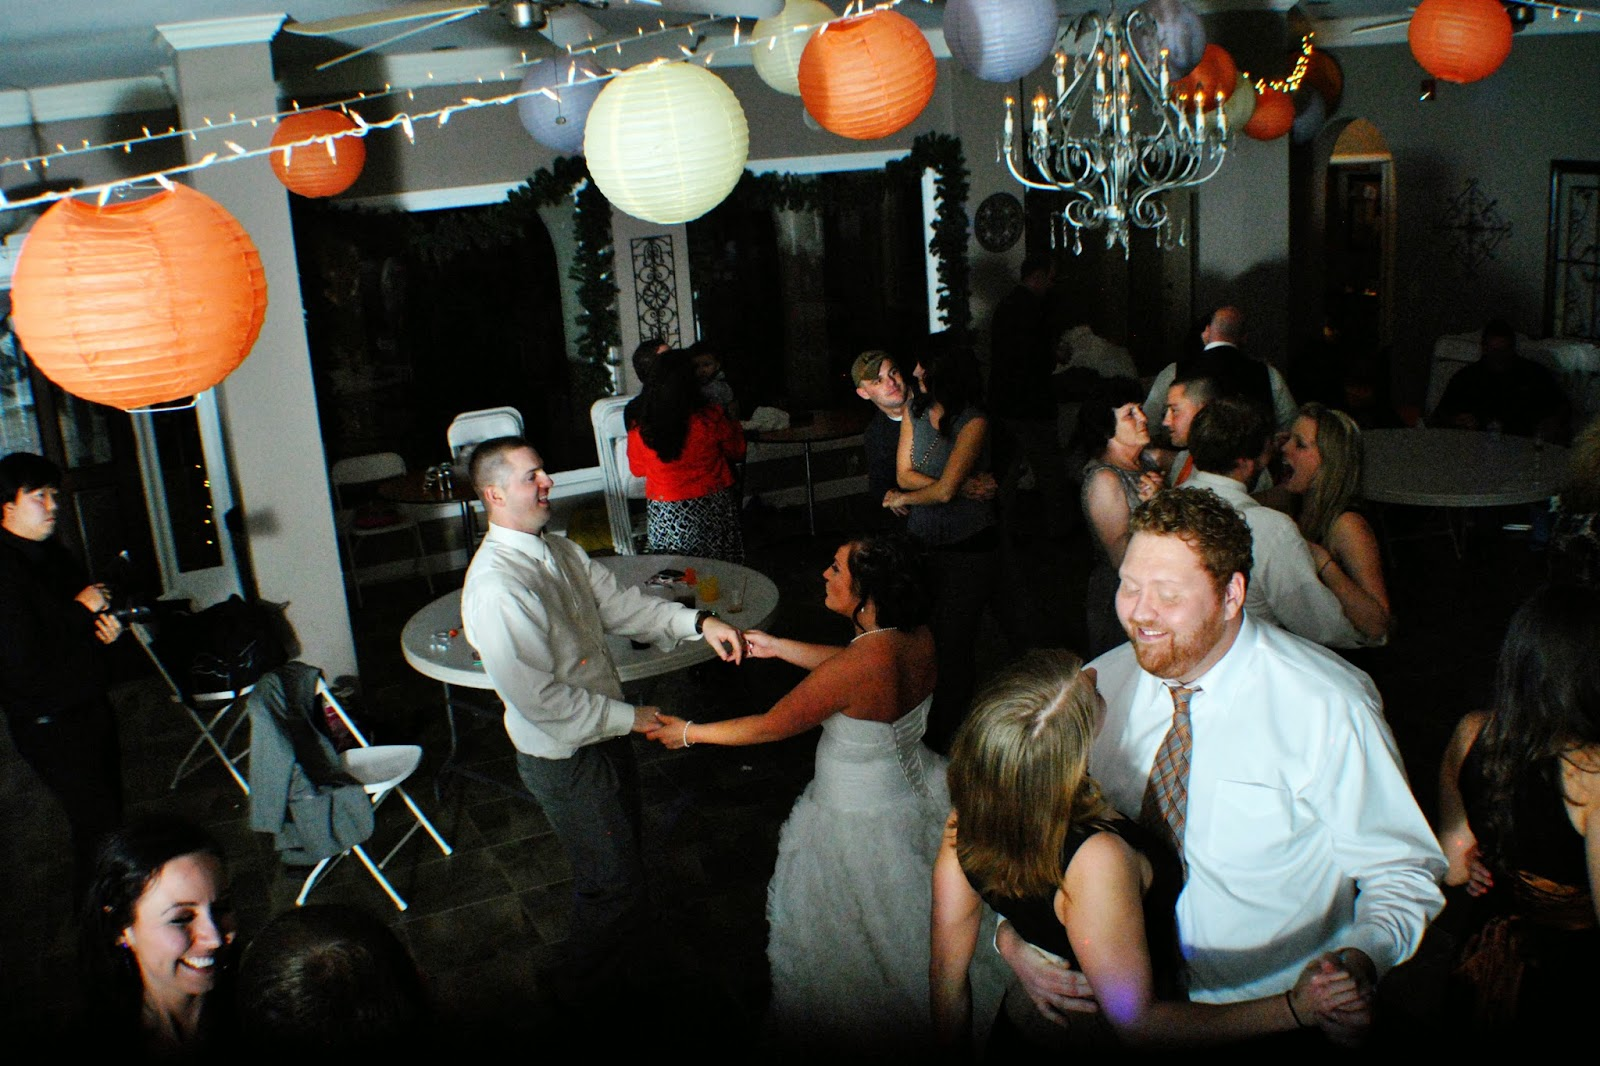 With Class LLC Wedding Coordination Party DJ - The Tennessee RiverPlace - Chattanooga, TN